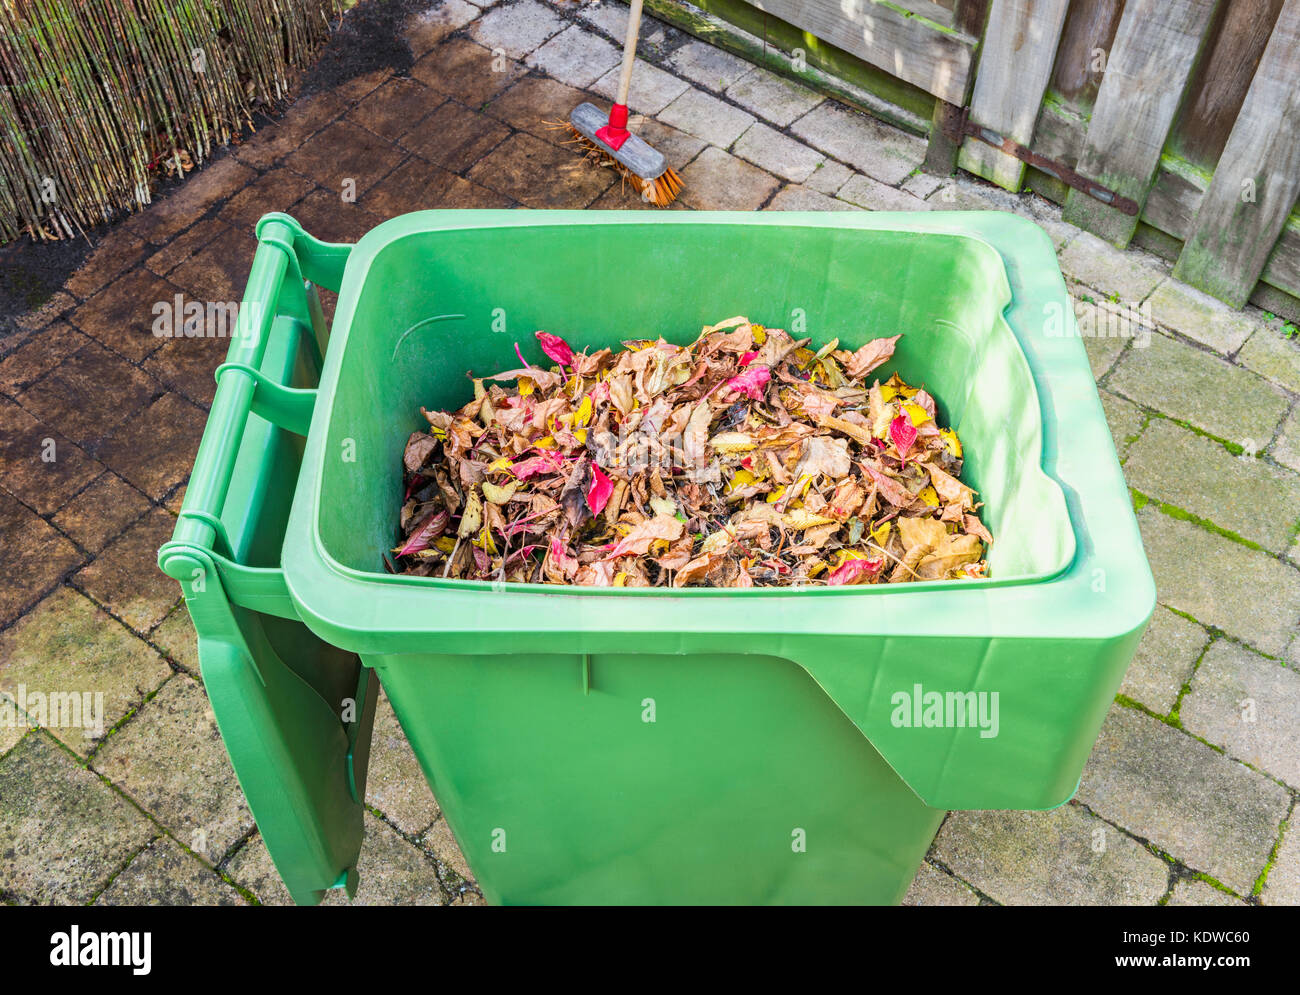 Autumn Leaves in Garbage Can in Back Yard - Stock Image